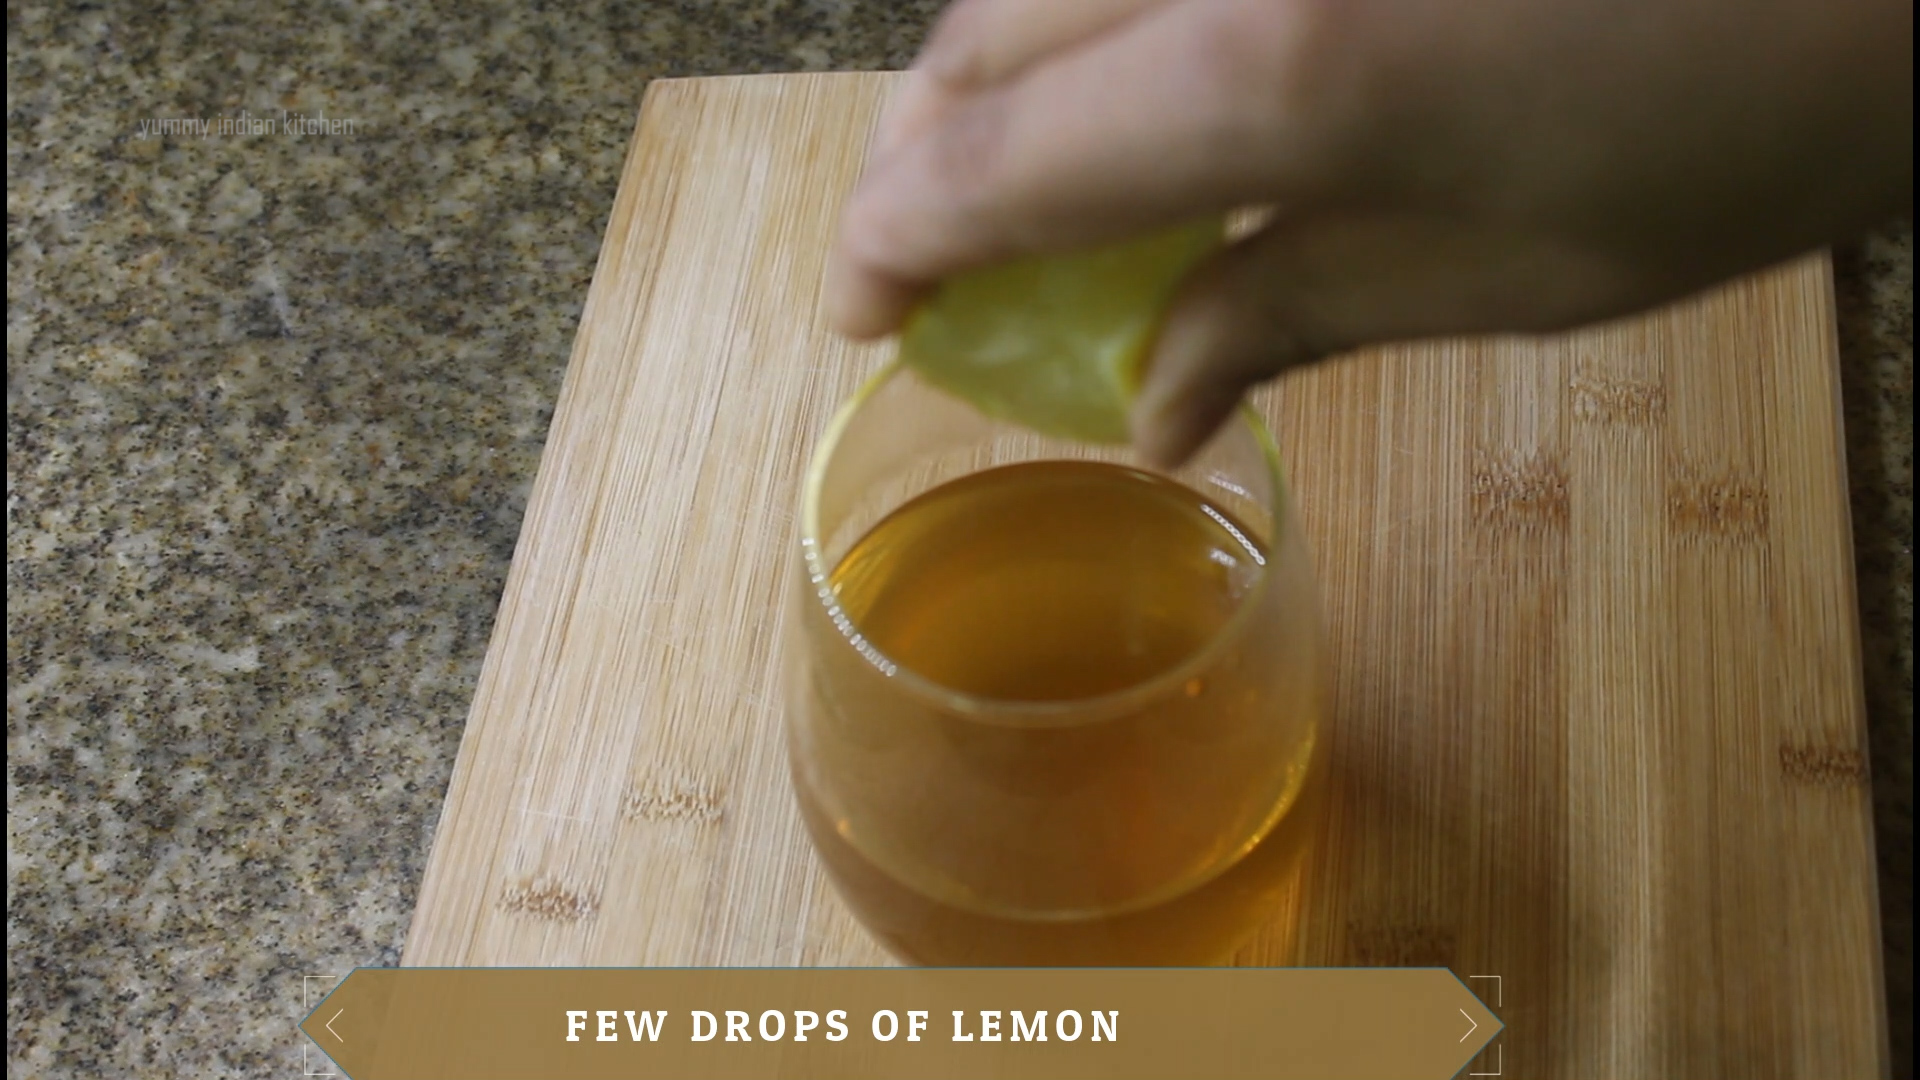 adding few lemon drops in the glass filled with drink